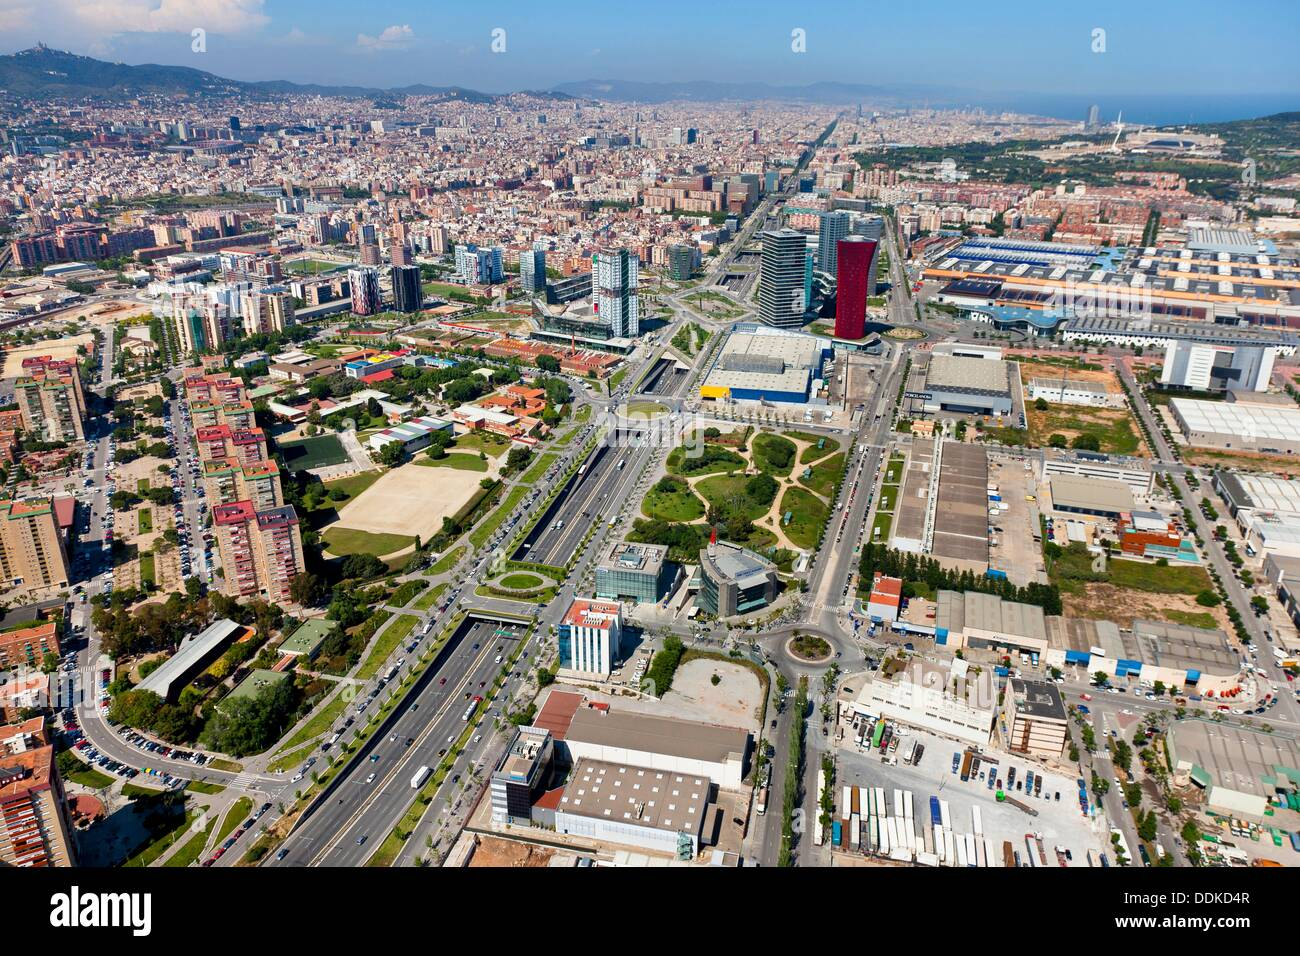 gran via and fira l hospitalet de llobregat barcelona spain stock photo royalty free image. Black Bedroom Furniture Sets. Home Design Ideas